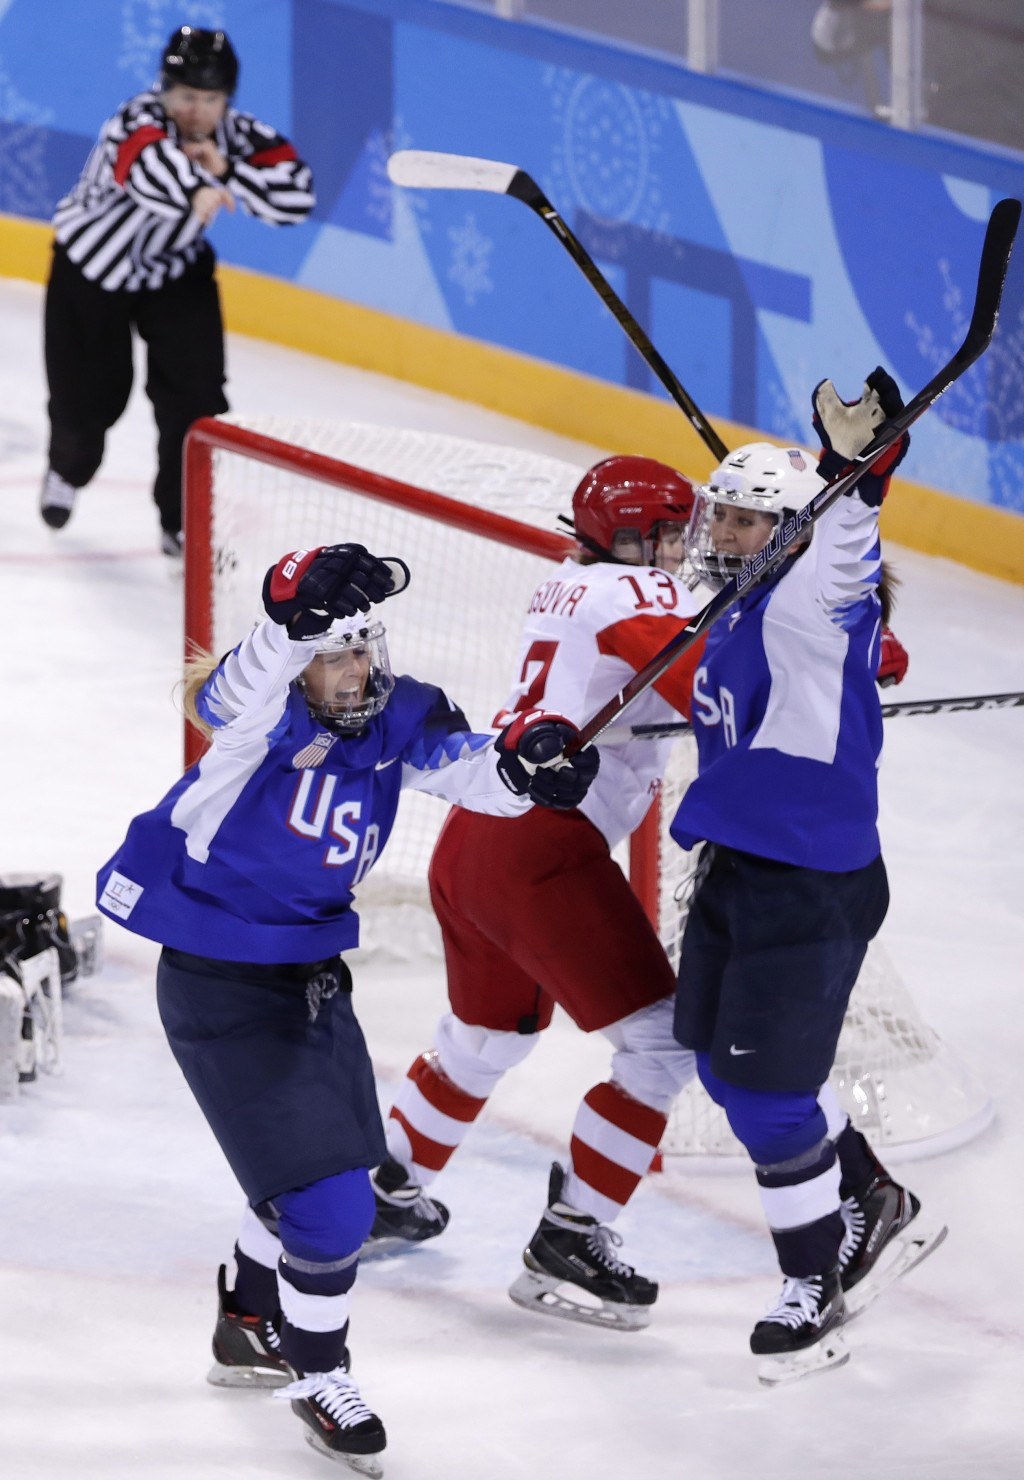 Gigi Marvin, left, of the United States, reacts after scoring a goal during the second period of the preliminary round of the women's hockey game agai